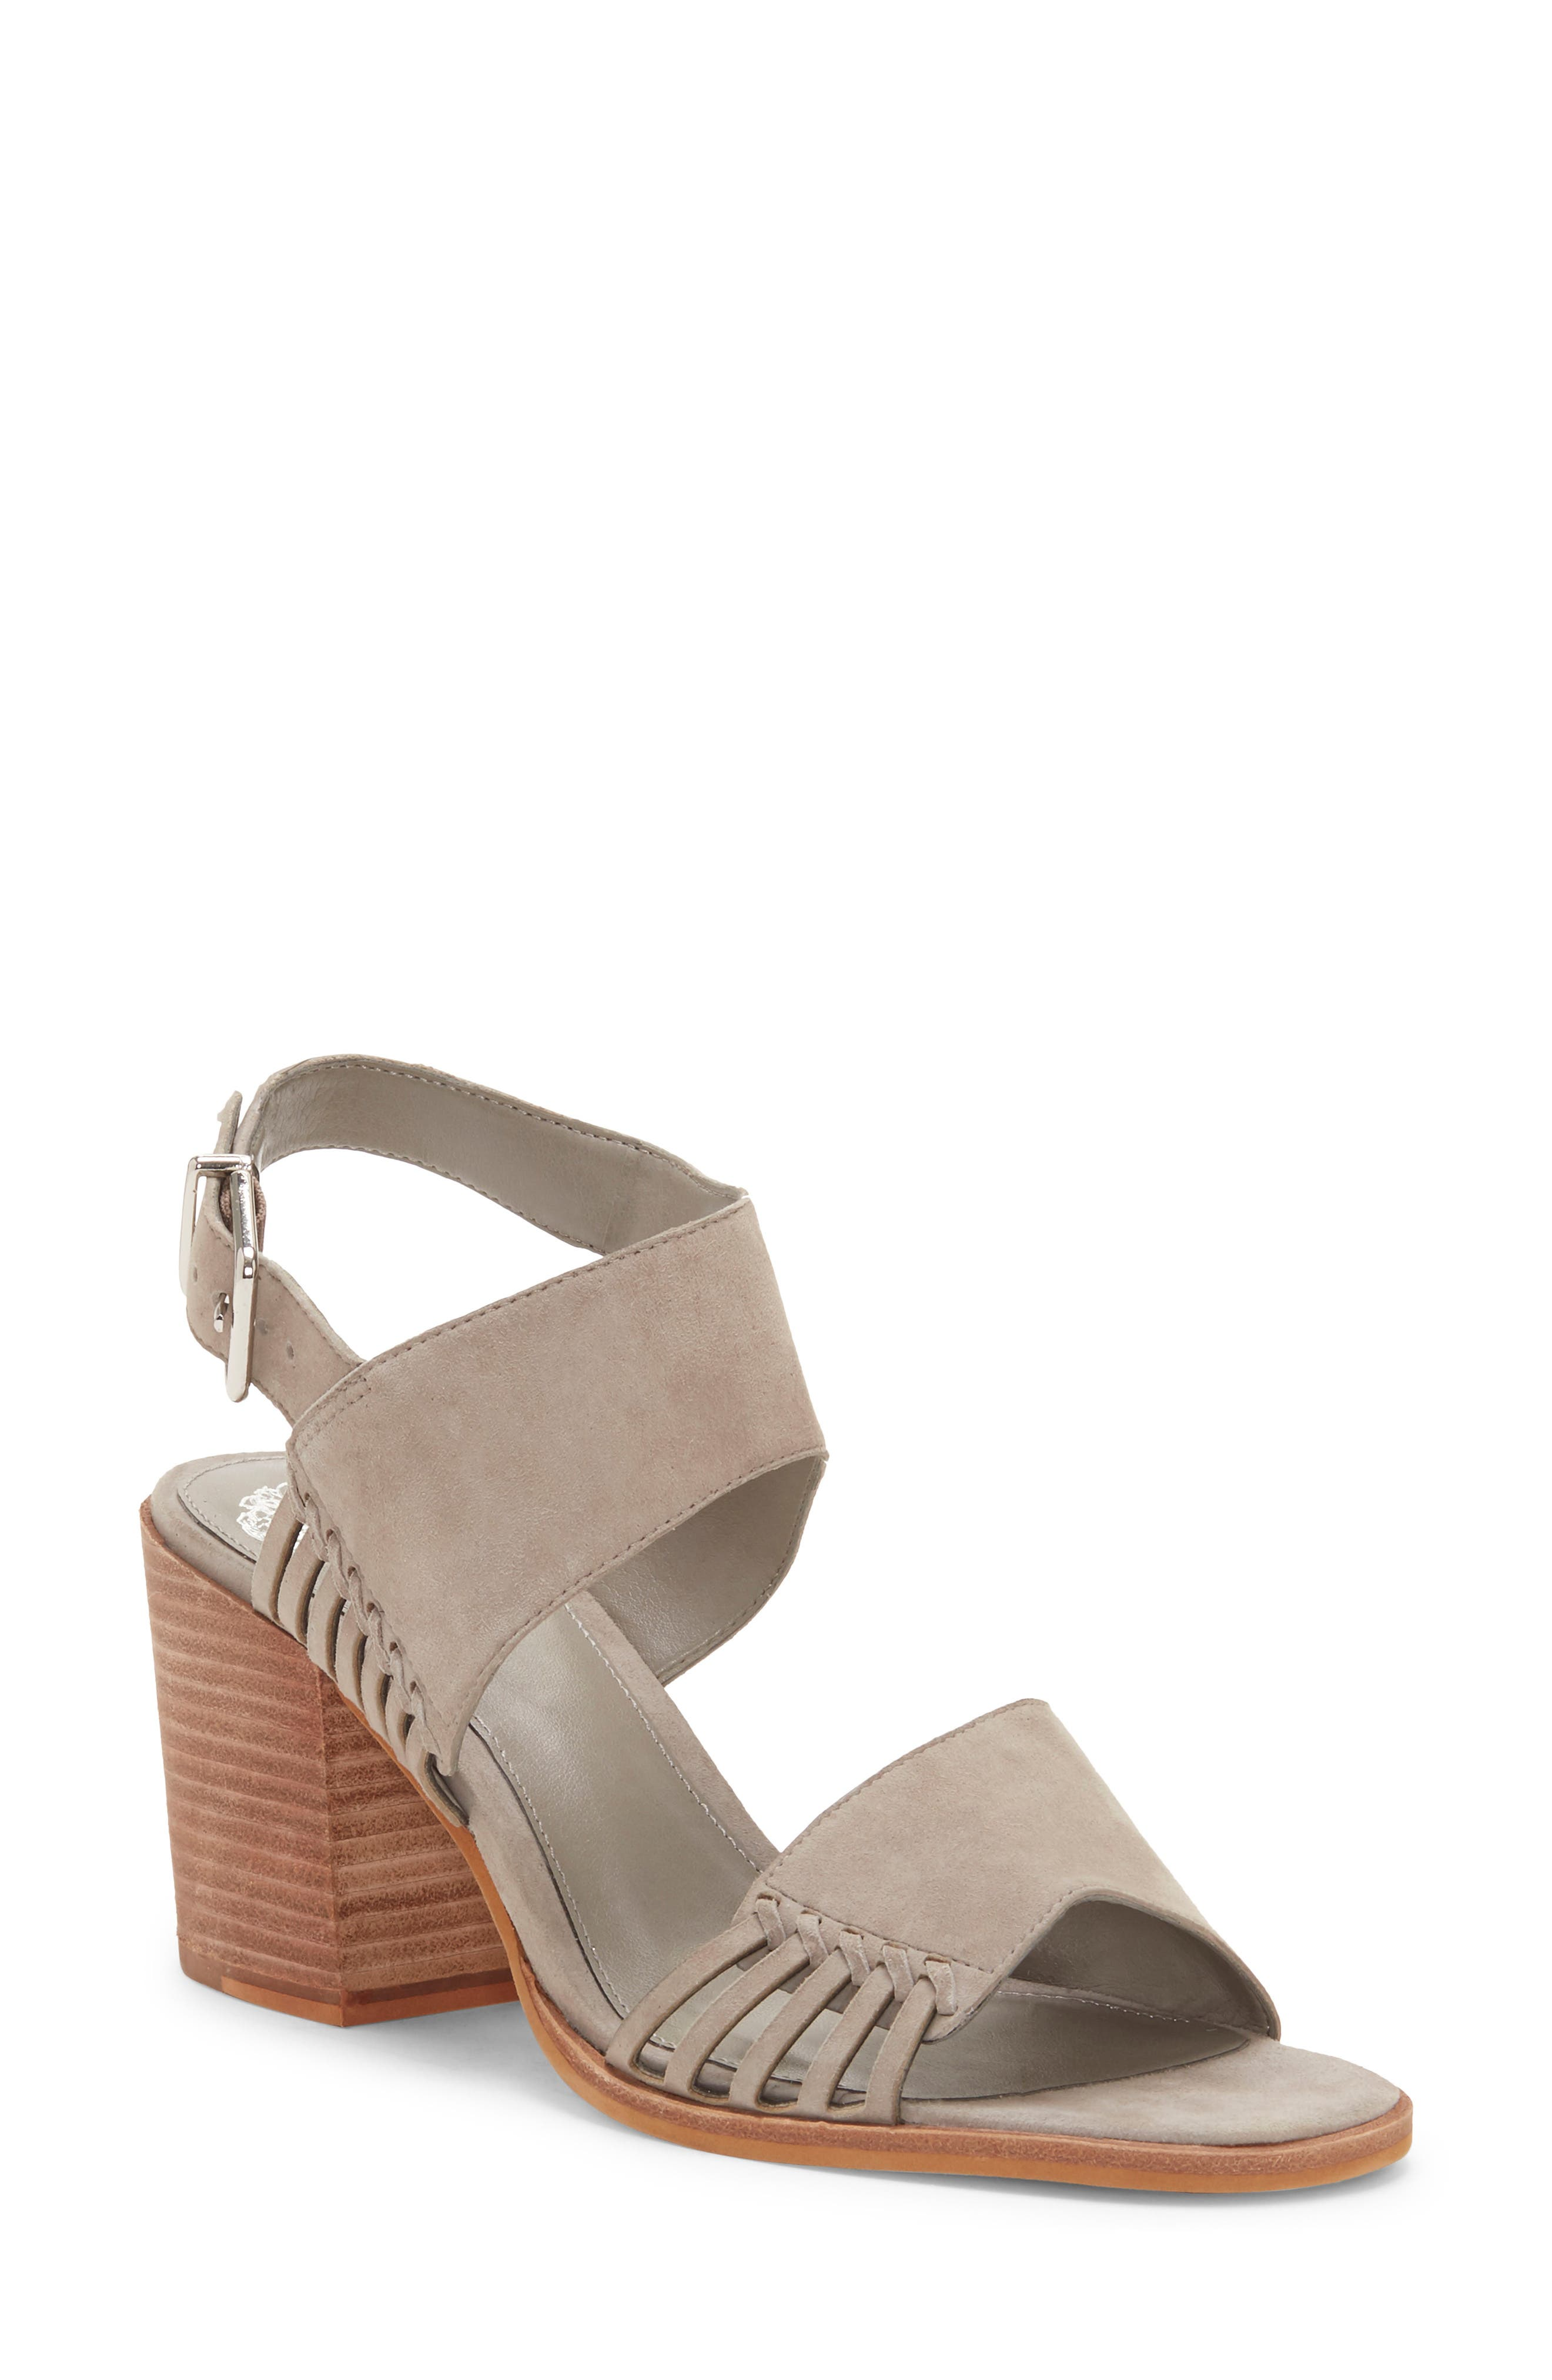 VINCE CAMUTO Karmelo Slingback Sandal, Main, color, STORM GREY LEATHER